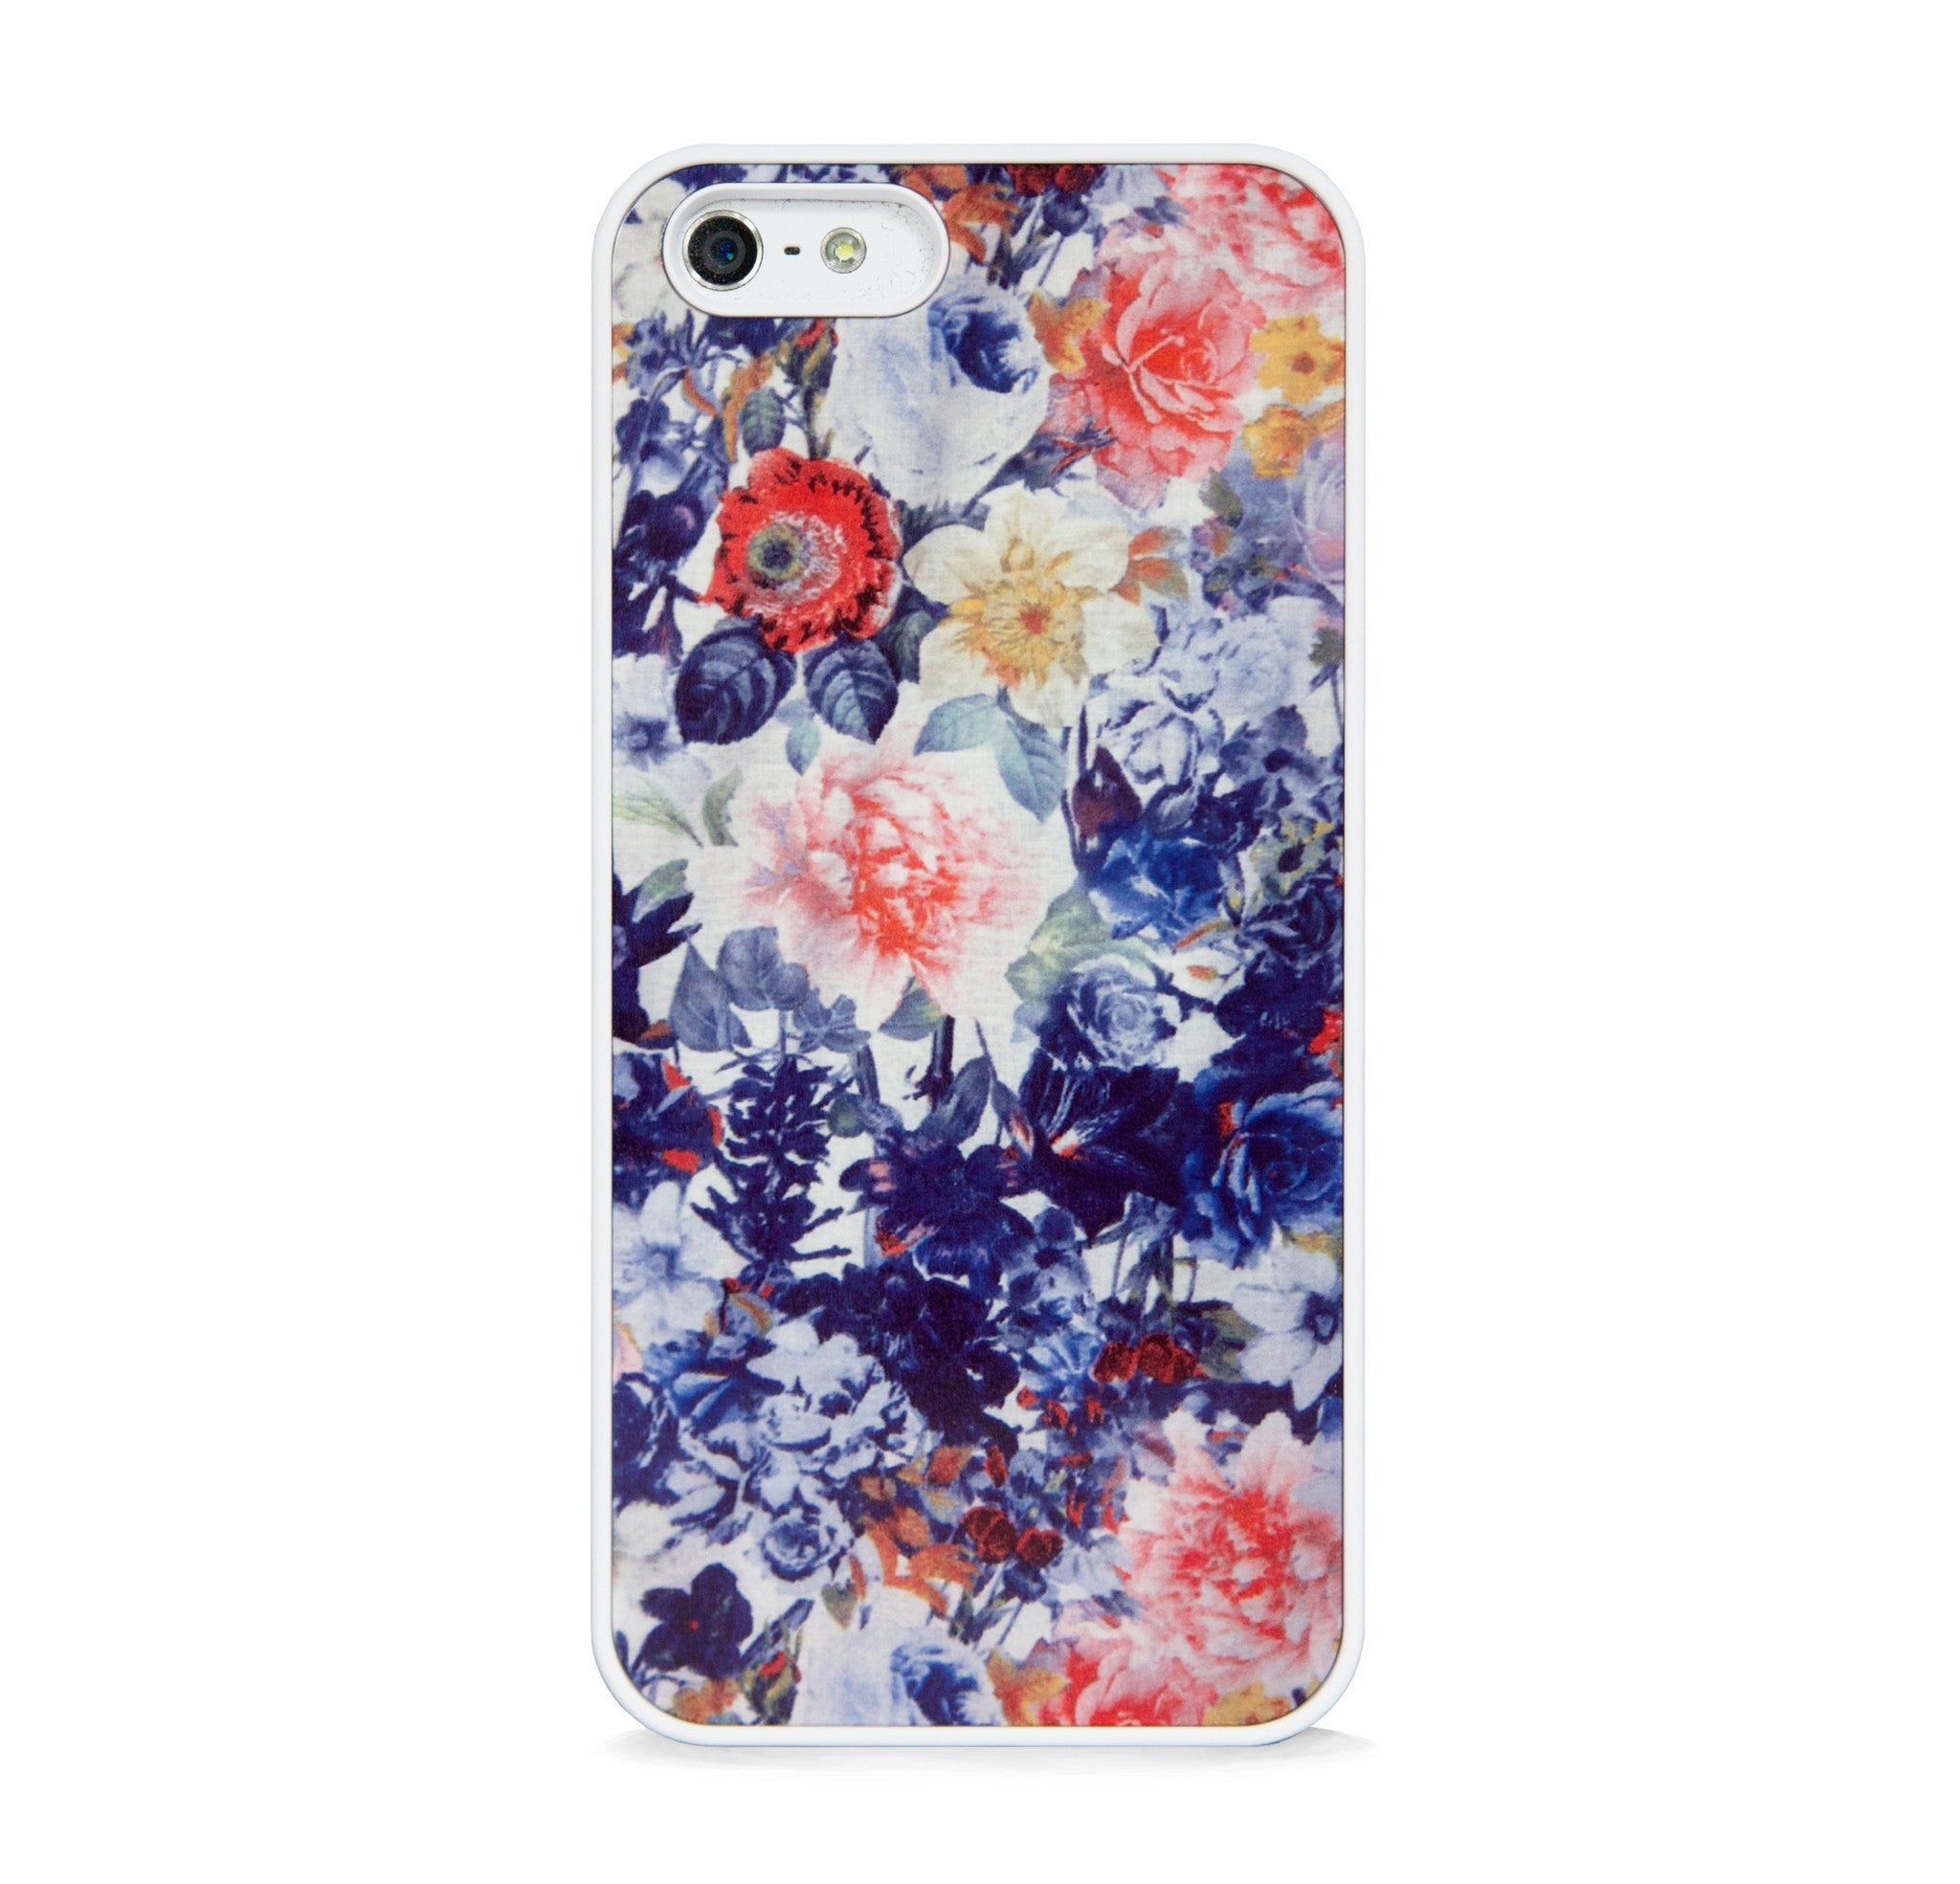 ARTISTIC FLORAL PATTERN NAVY FOR IPHONE 5/5S, IPHONE SE